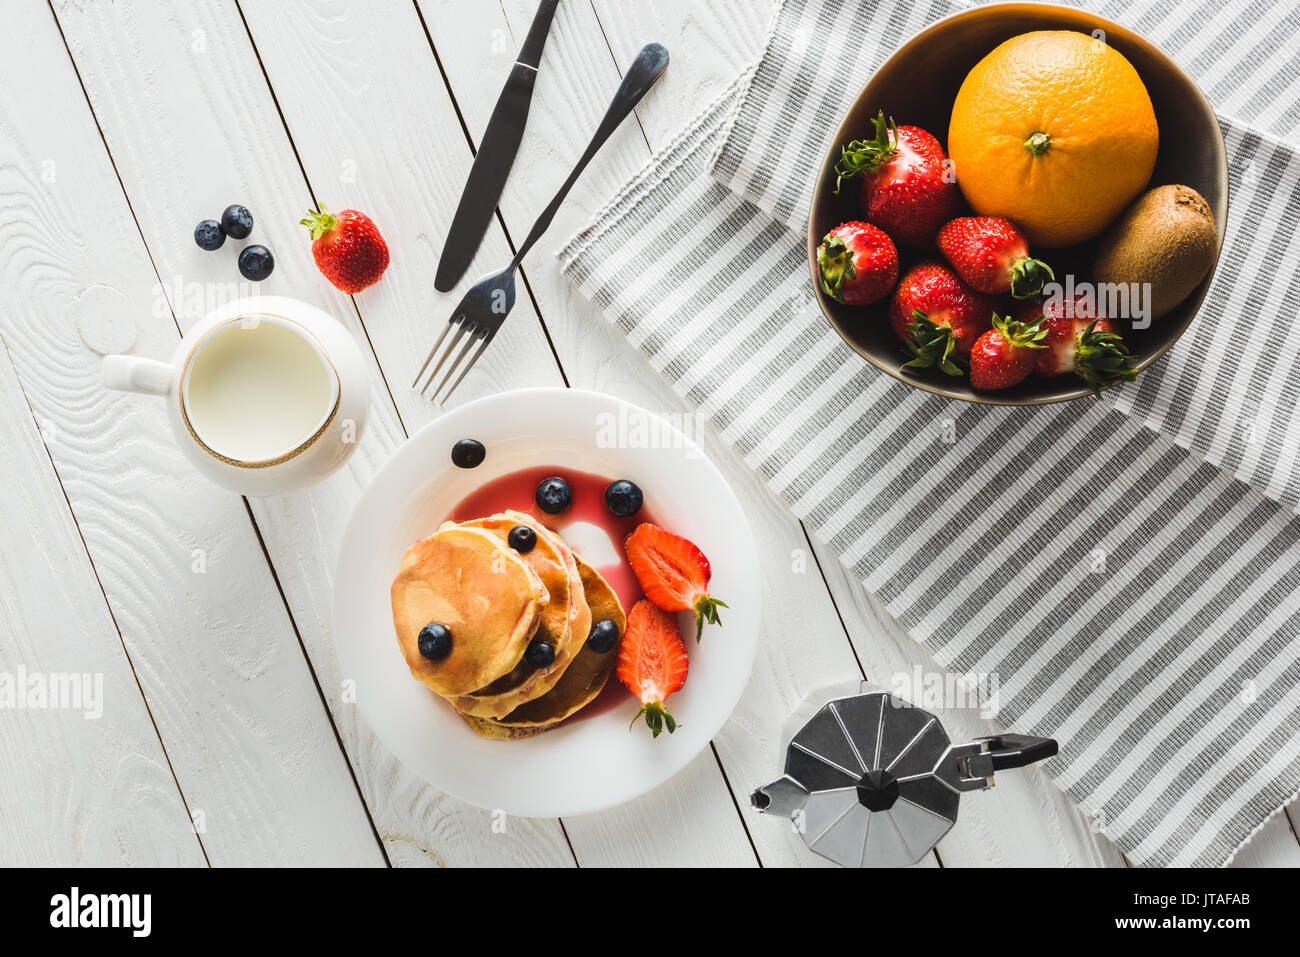 top view of homemade sweet pancakes and different fruits for healthy breakfast on wooden tabletop - Stock Image